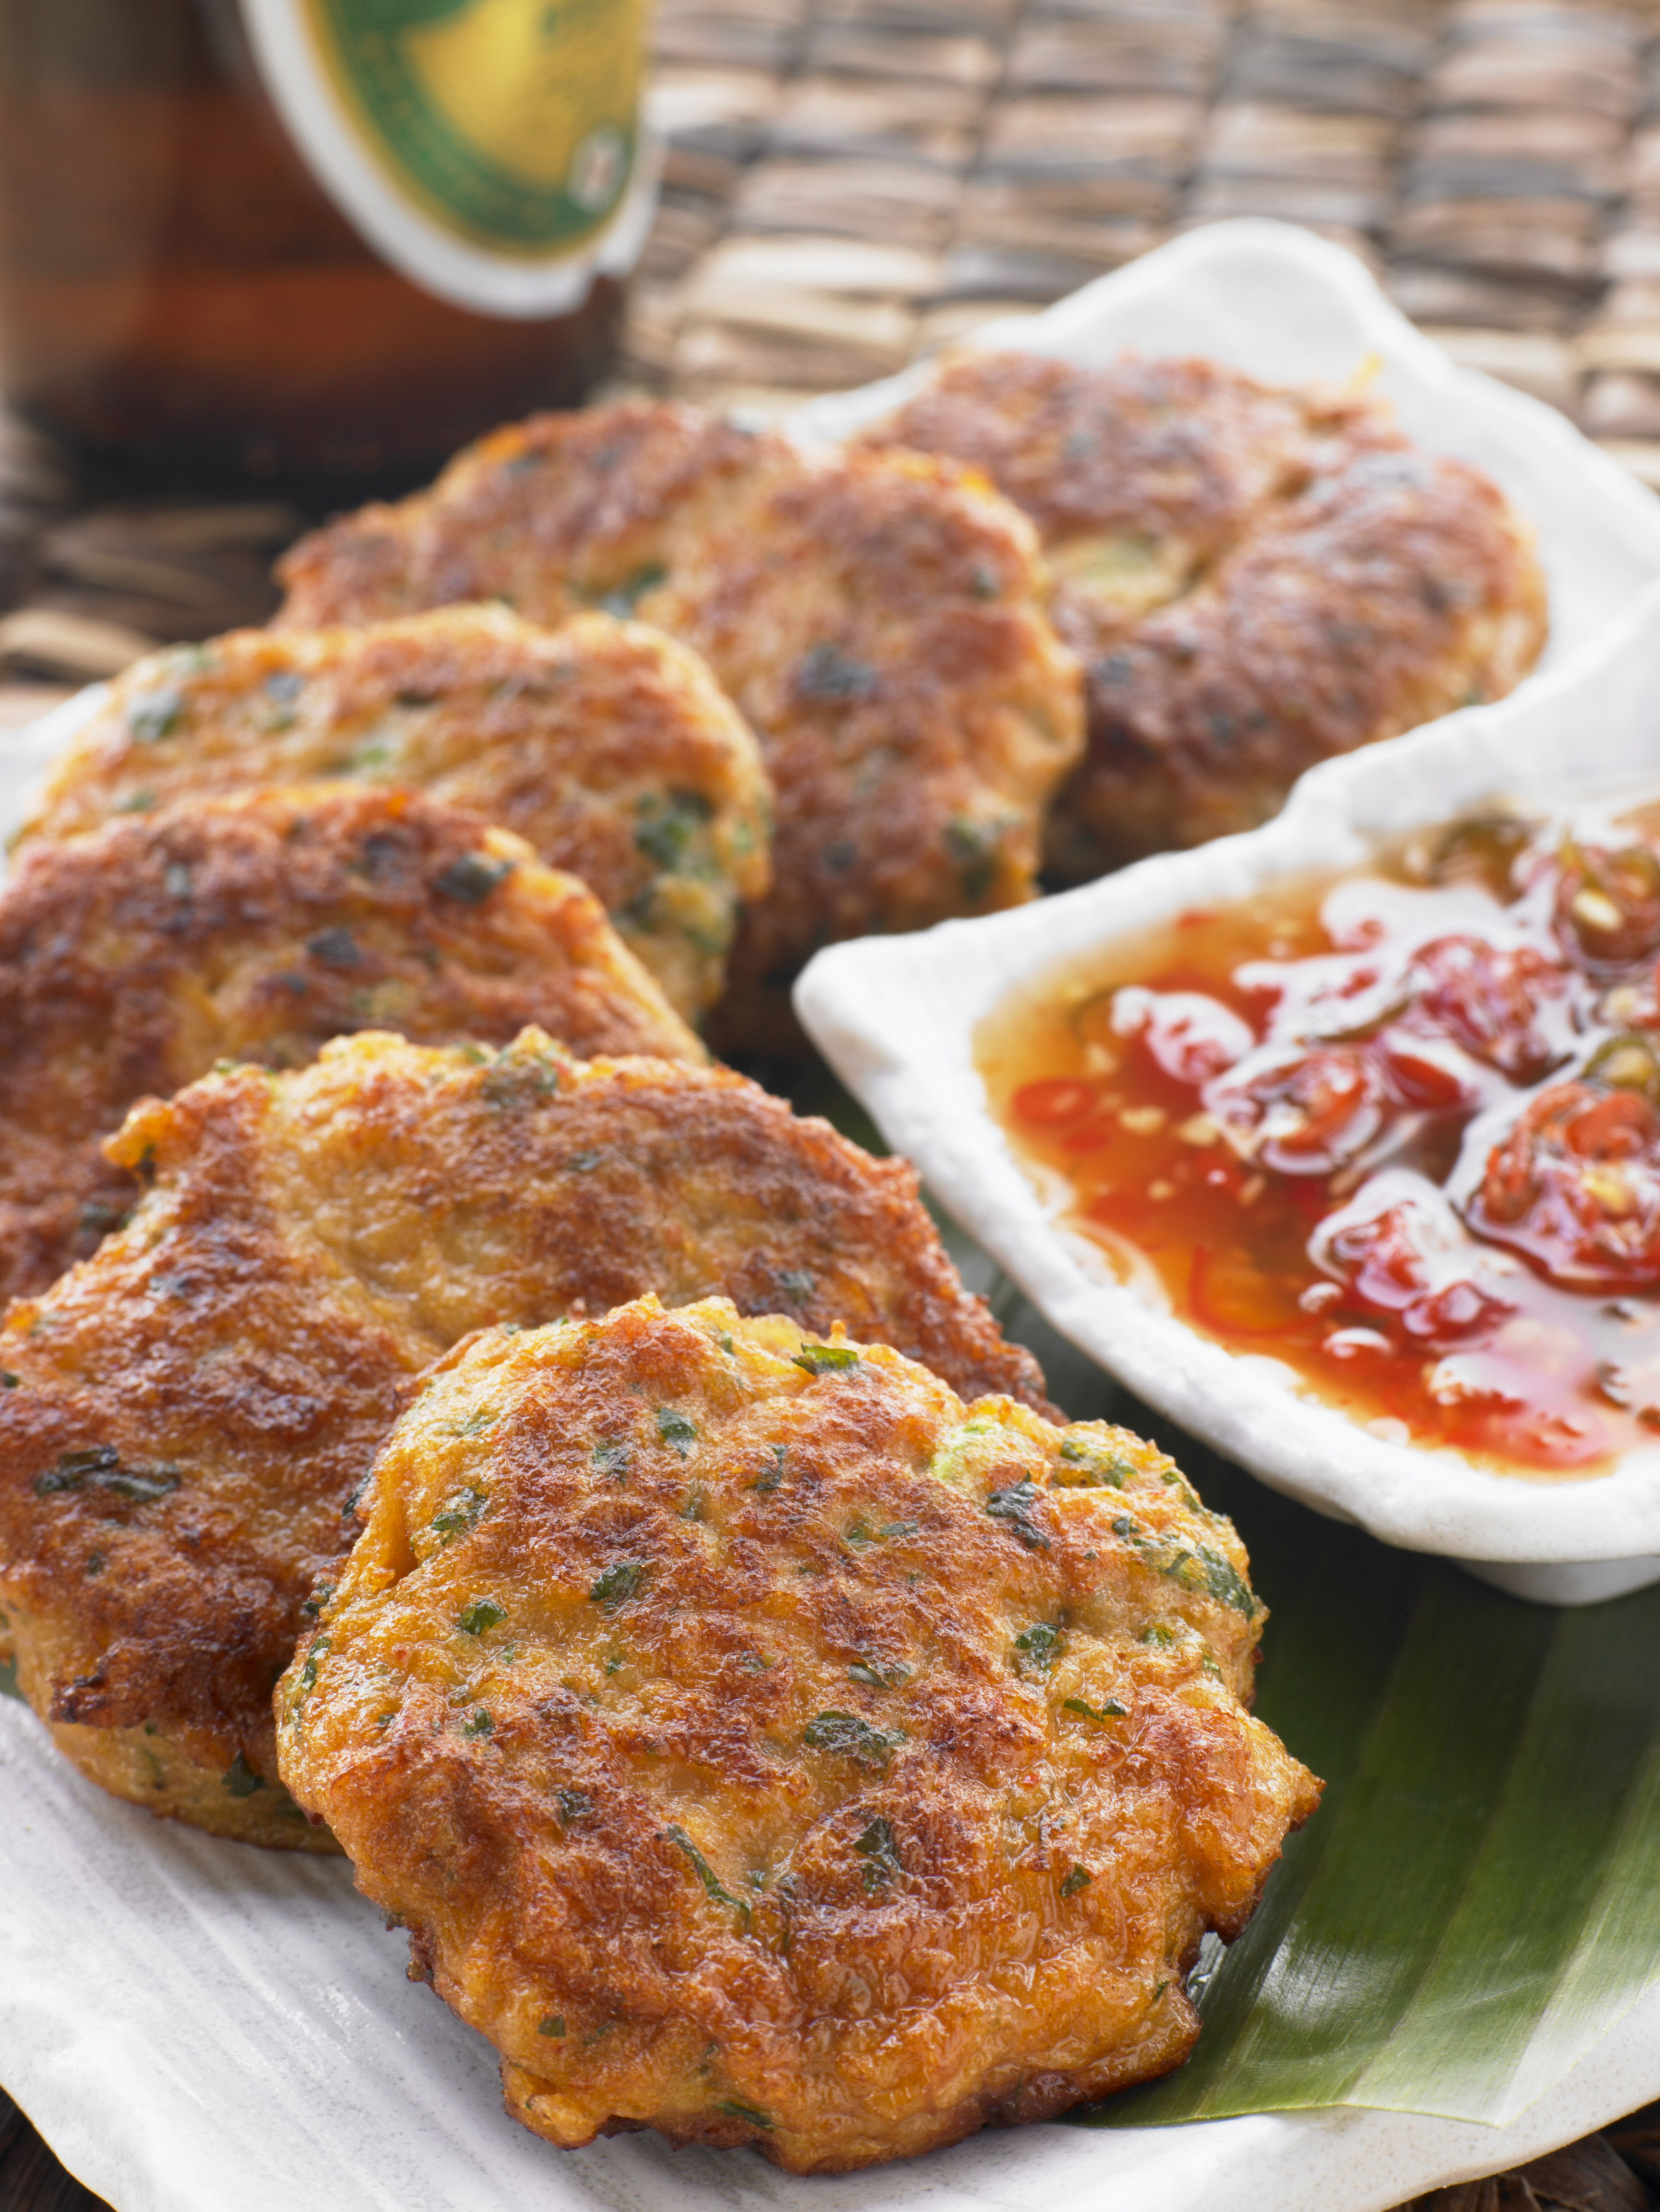 How To Cook Crab Cakes From The Store